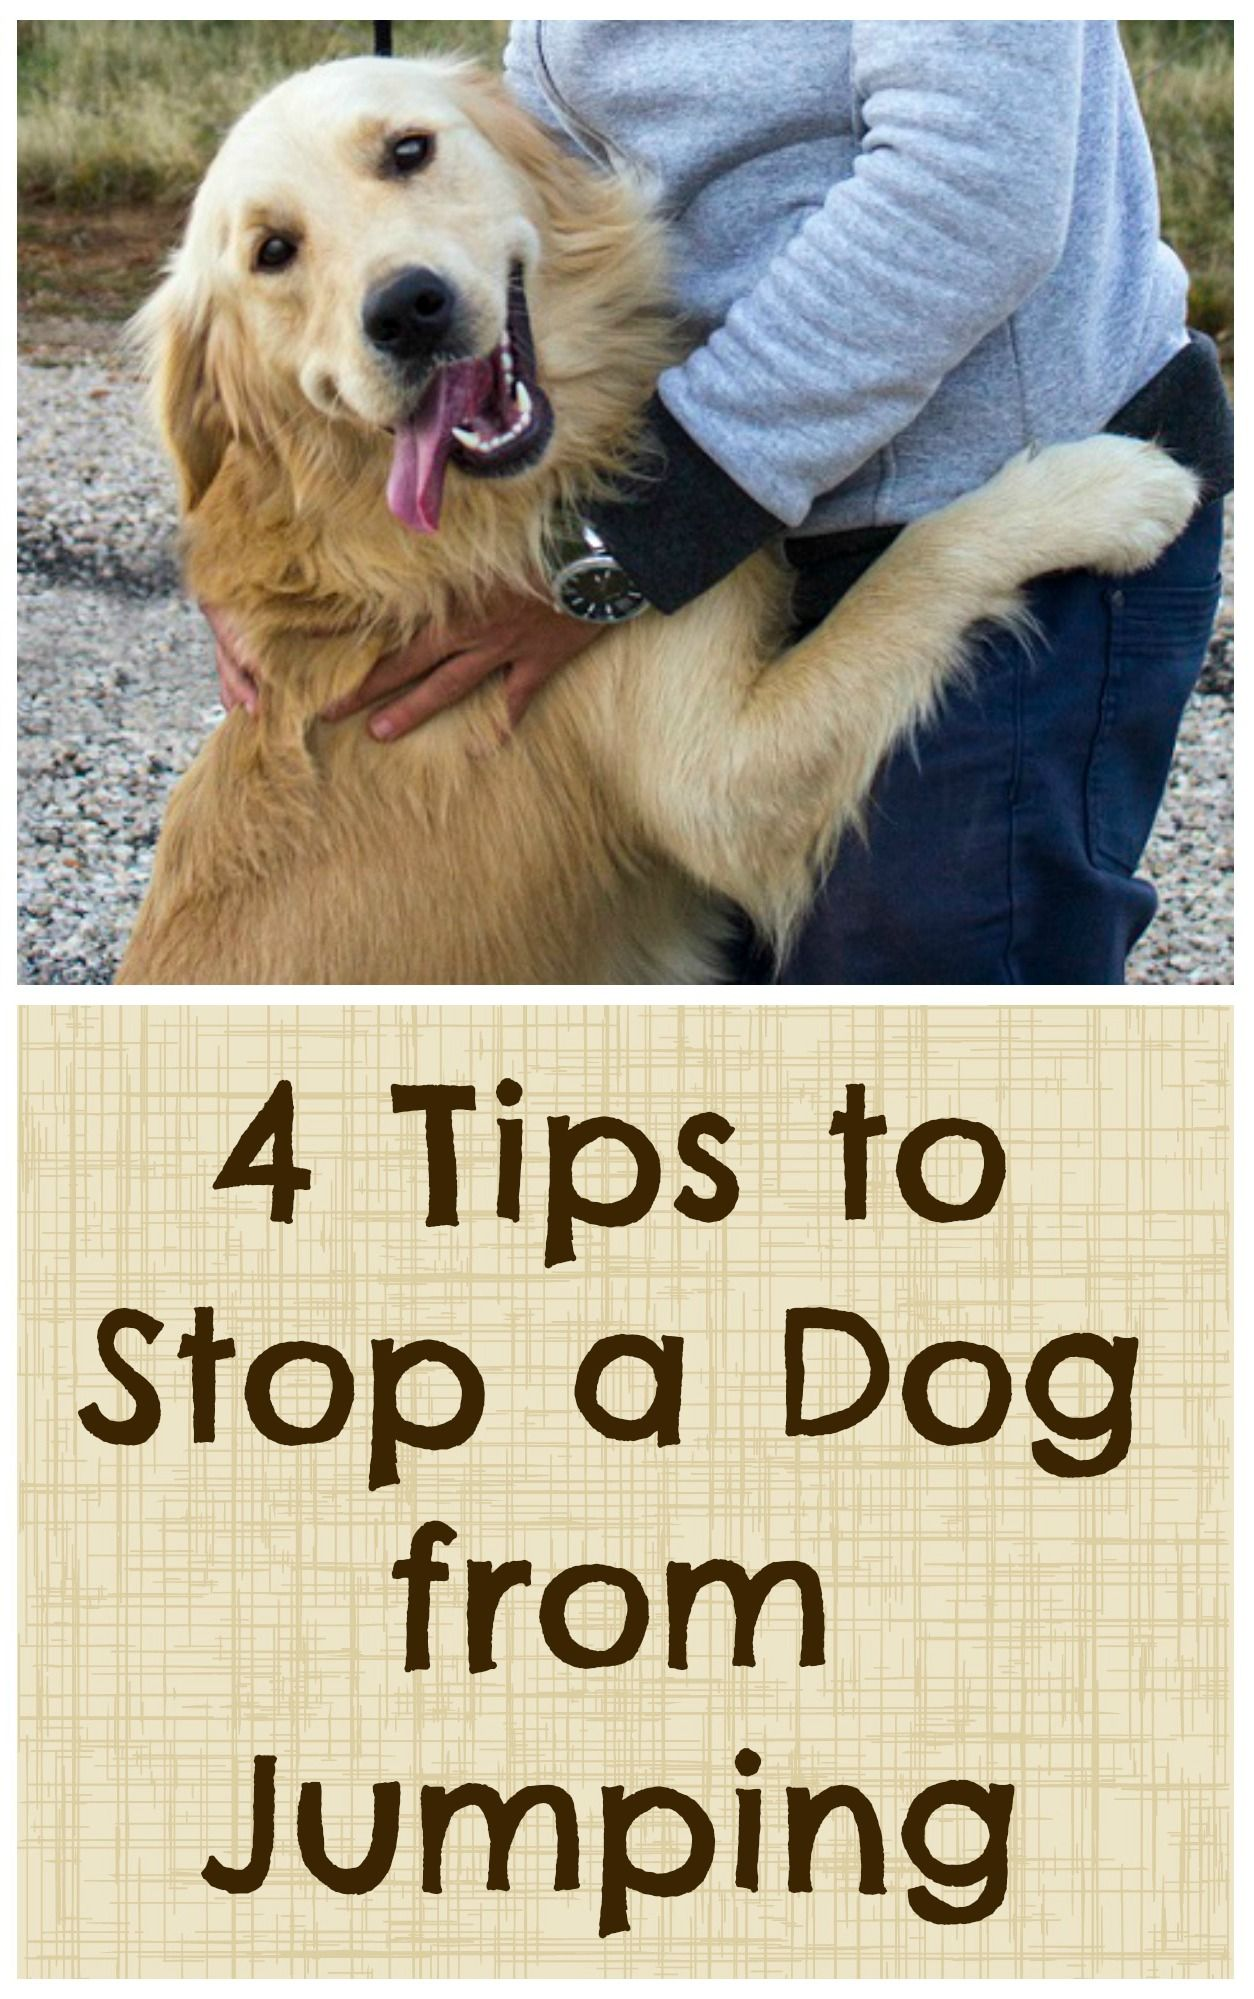 4 Tips To Stop A Dog From Jumping The How To Dog Blog Dog Friends Dog Training Obedience Dog Care